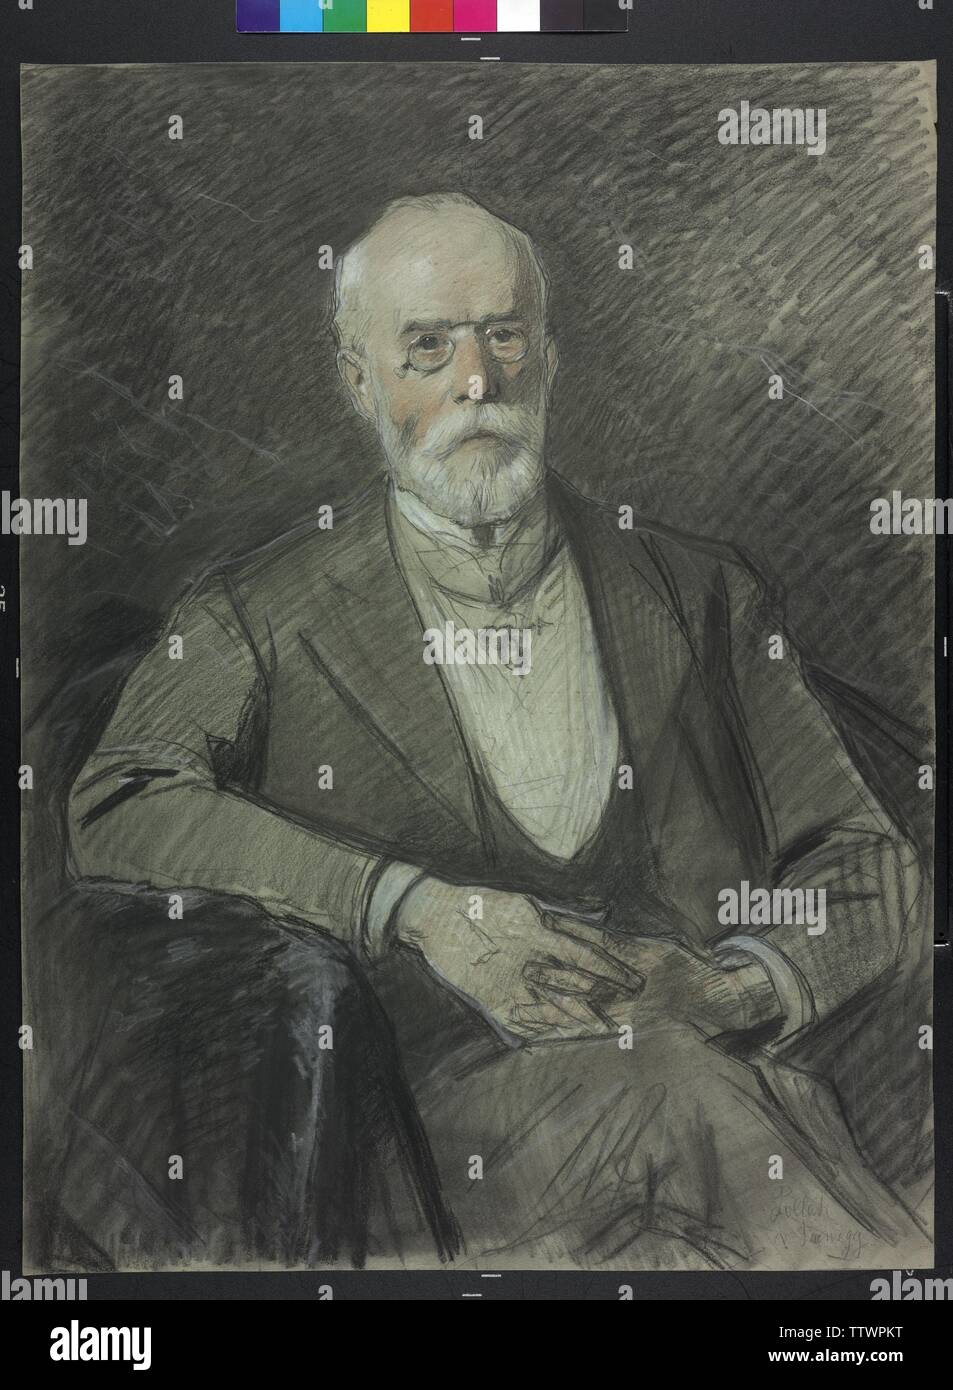 pollack von Parnegg, Leopold Baron, pastel by Julius Schmid, Additional-Rights-Clearance-Info-Not-Available - Stock Image